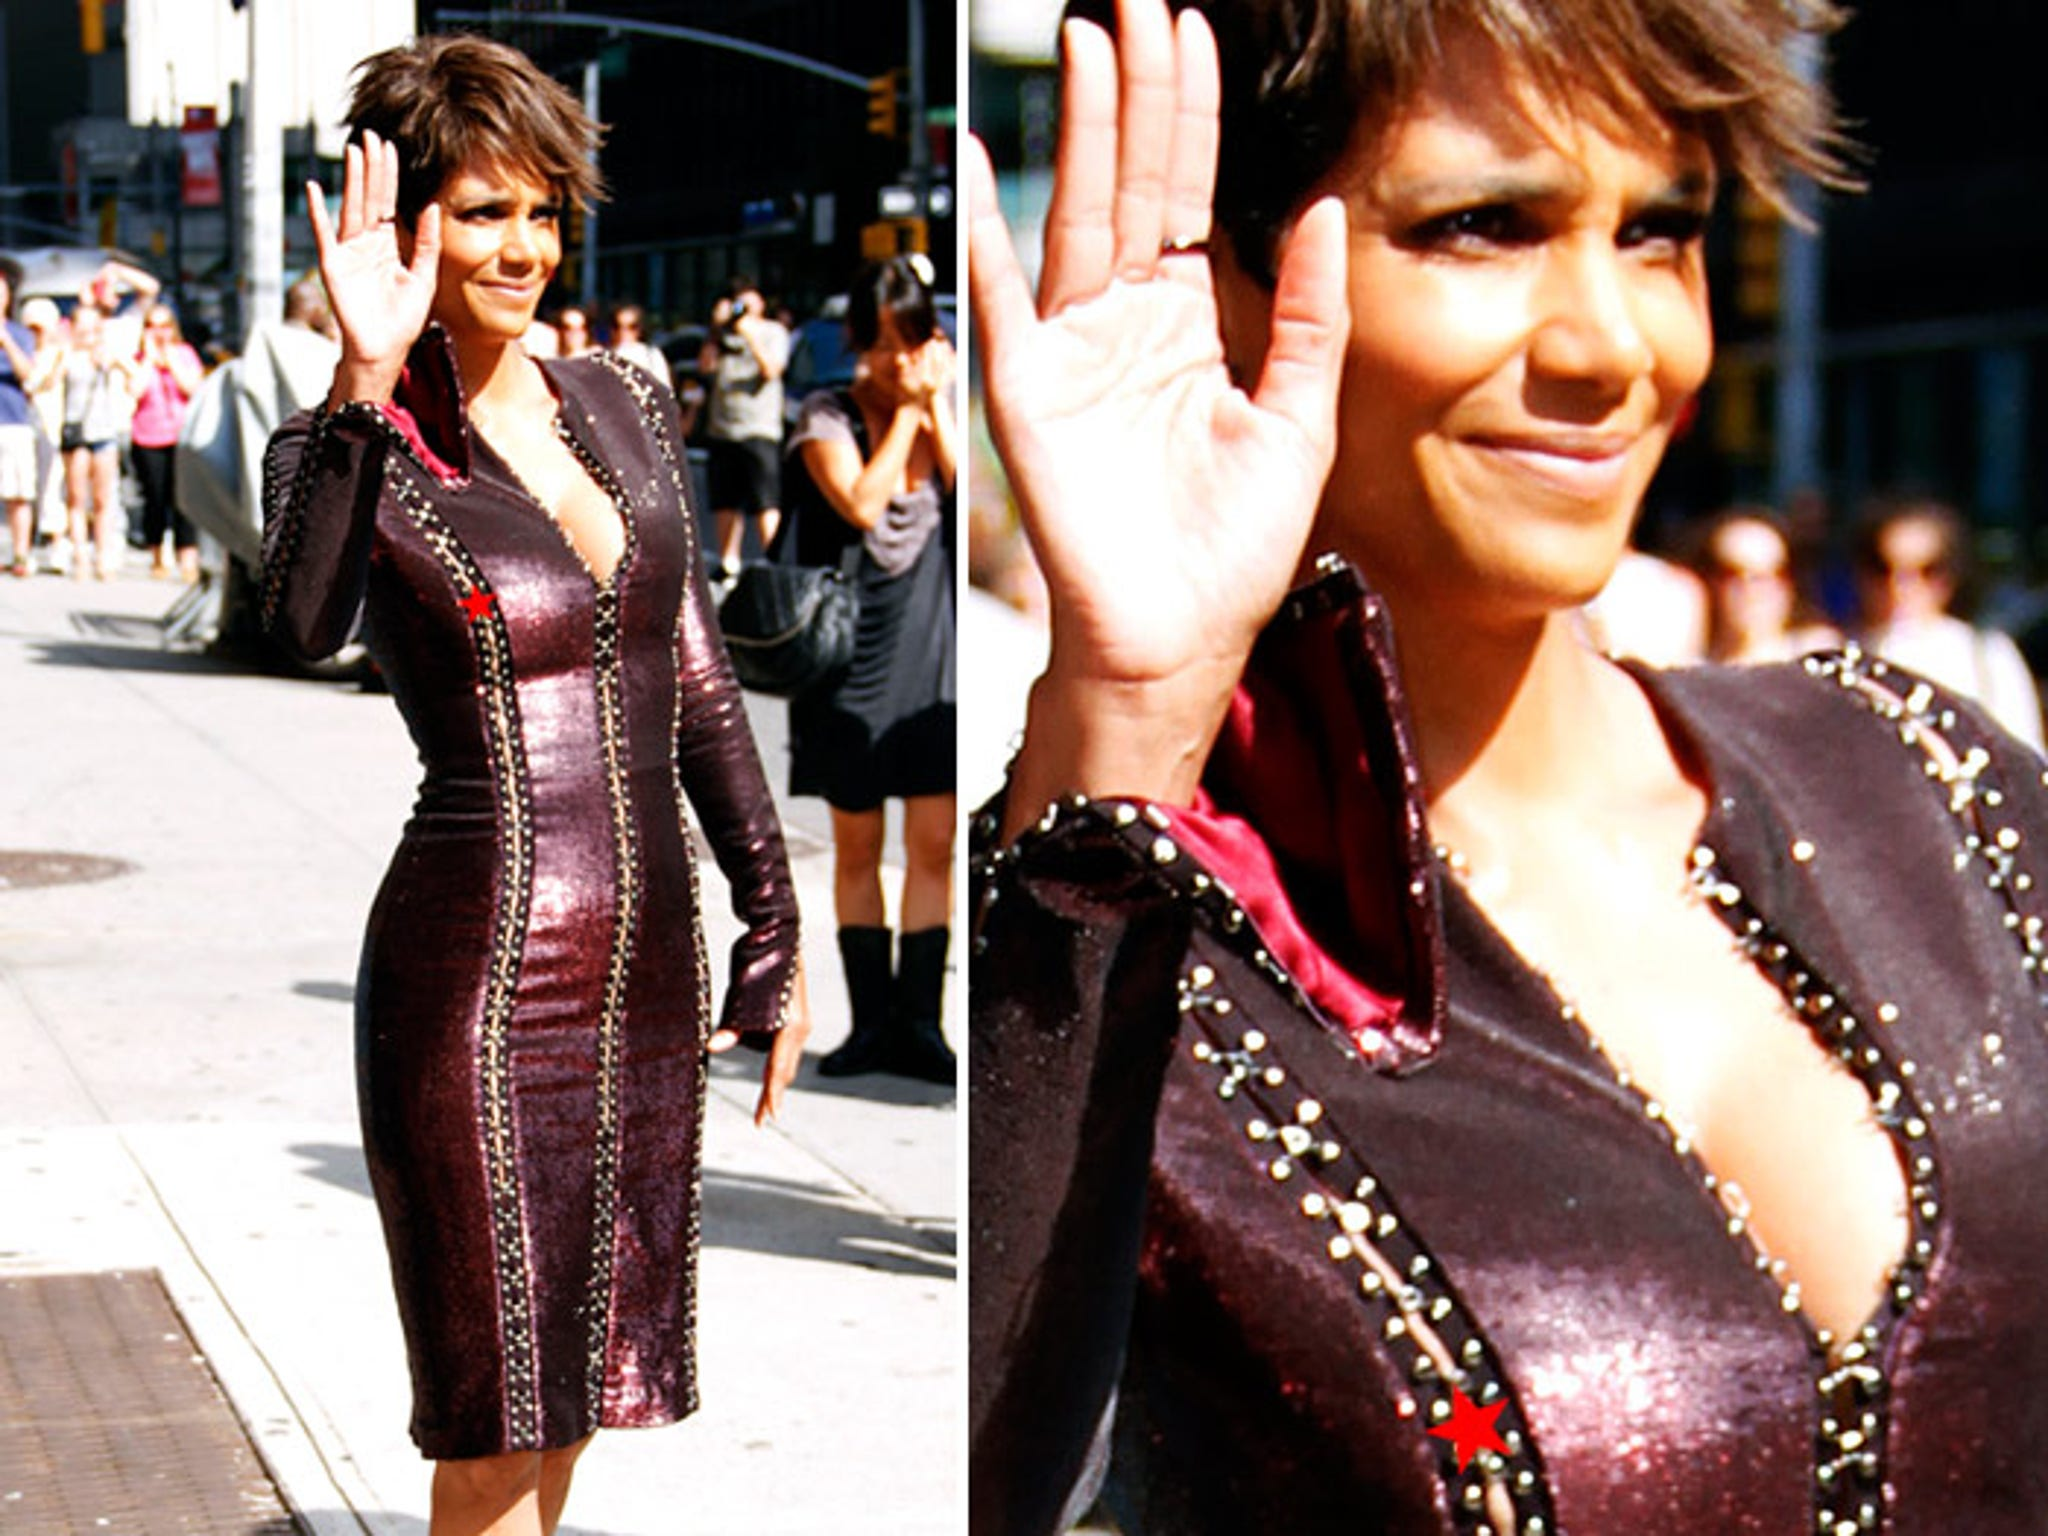 Halle Berry Nip Slip Slippery Nipple Photos